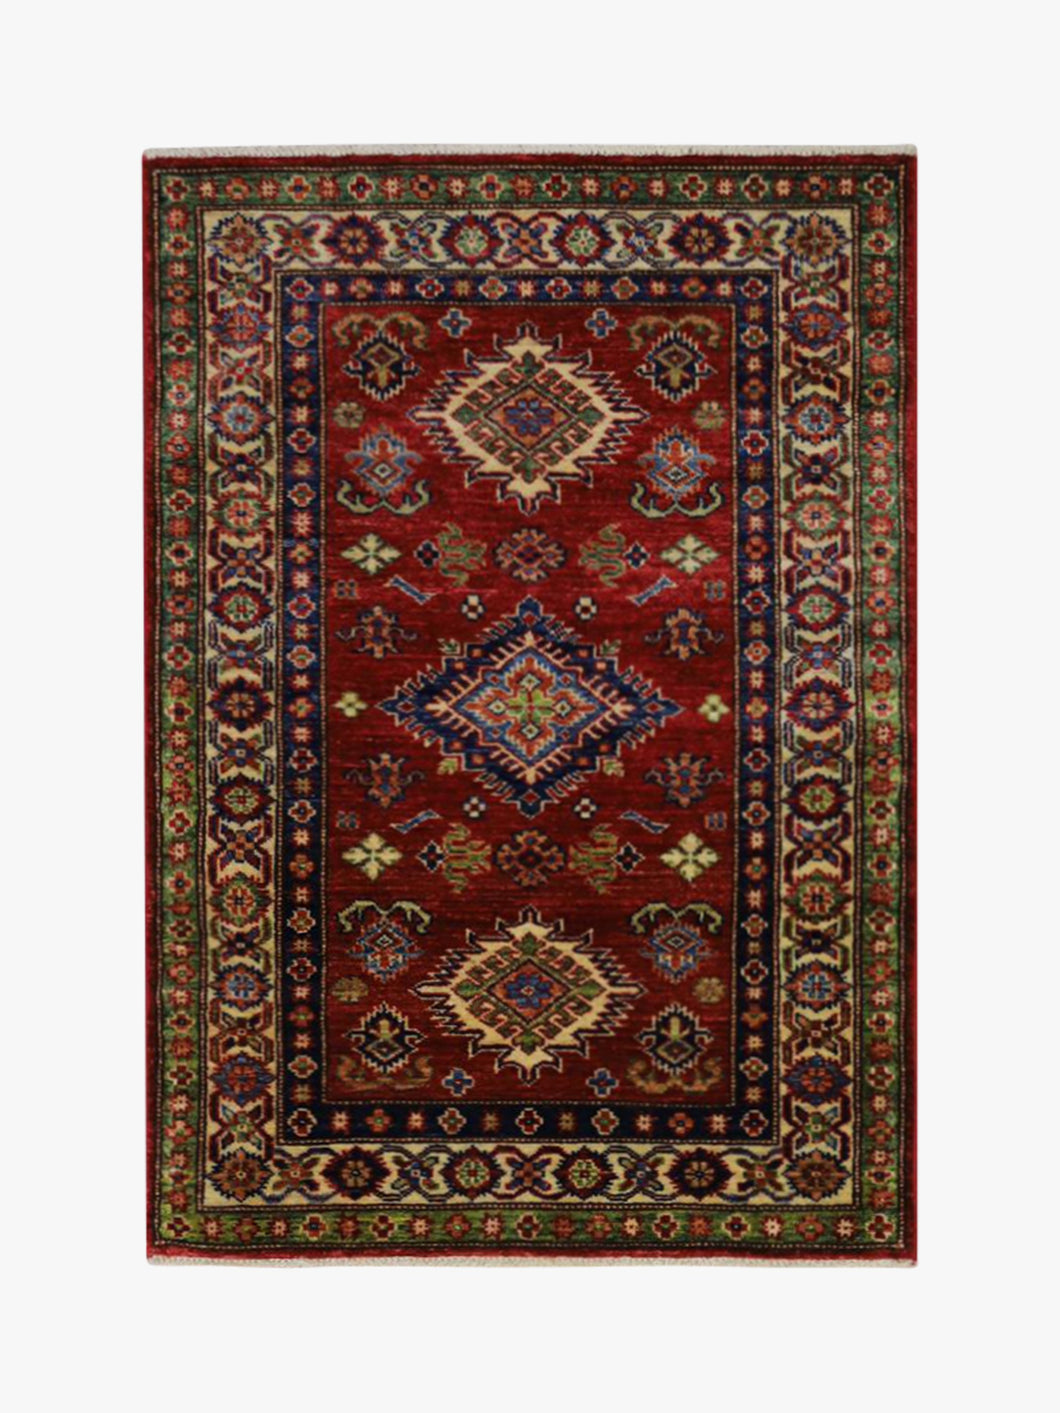 Supreme Kazak PC 45362 - 1.16 X 0.83